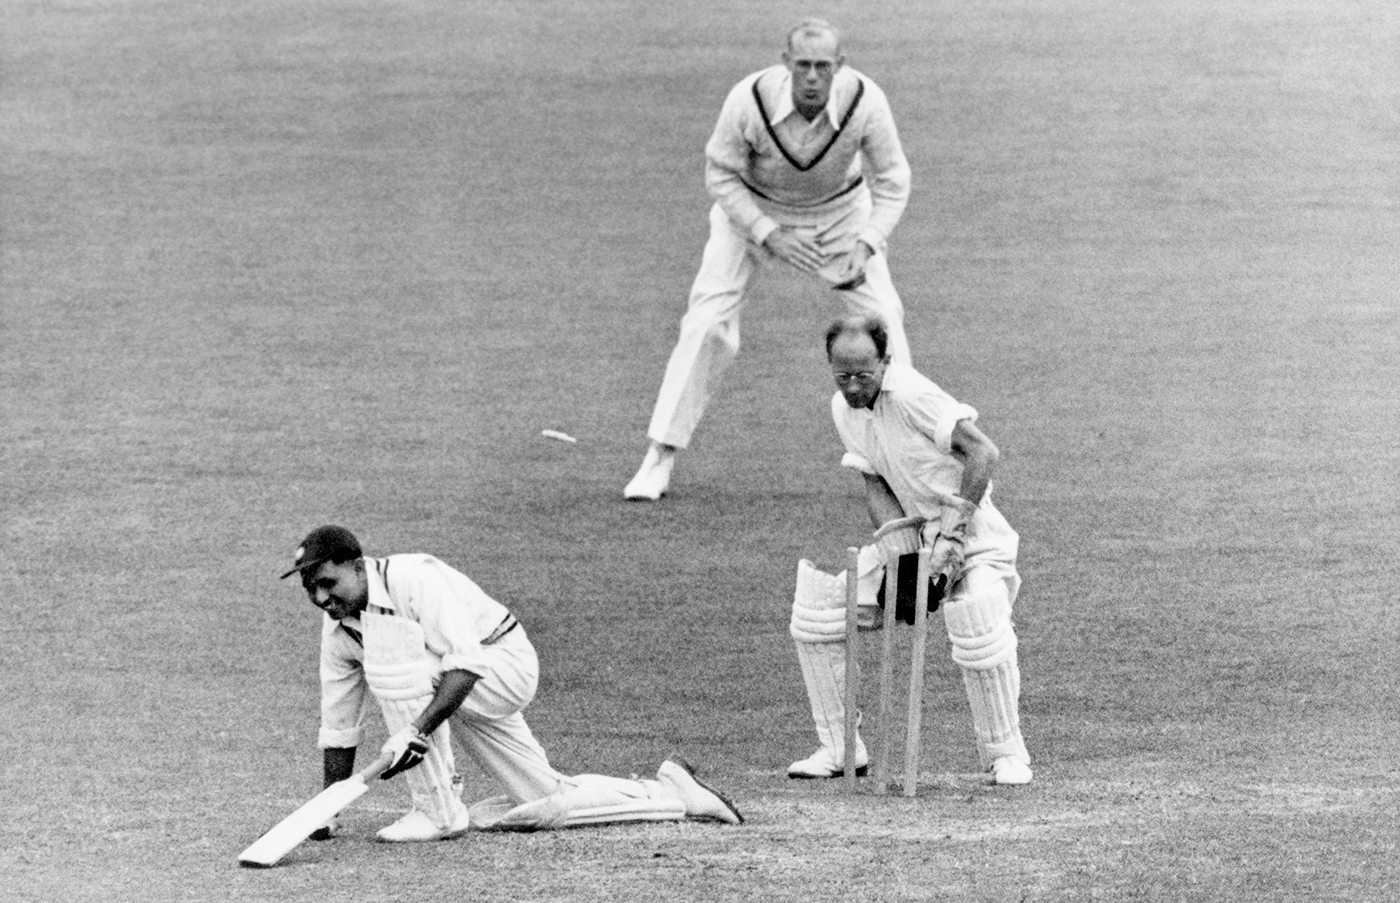 Amarnath is bowled by Frank Smailes in the Lord's Test